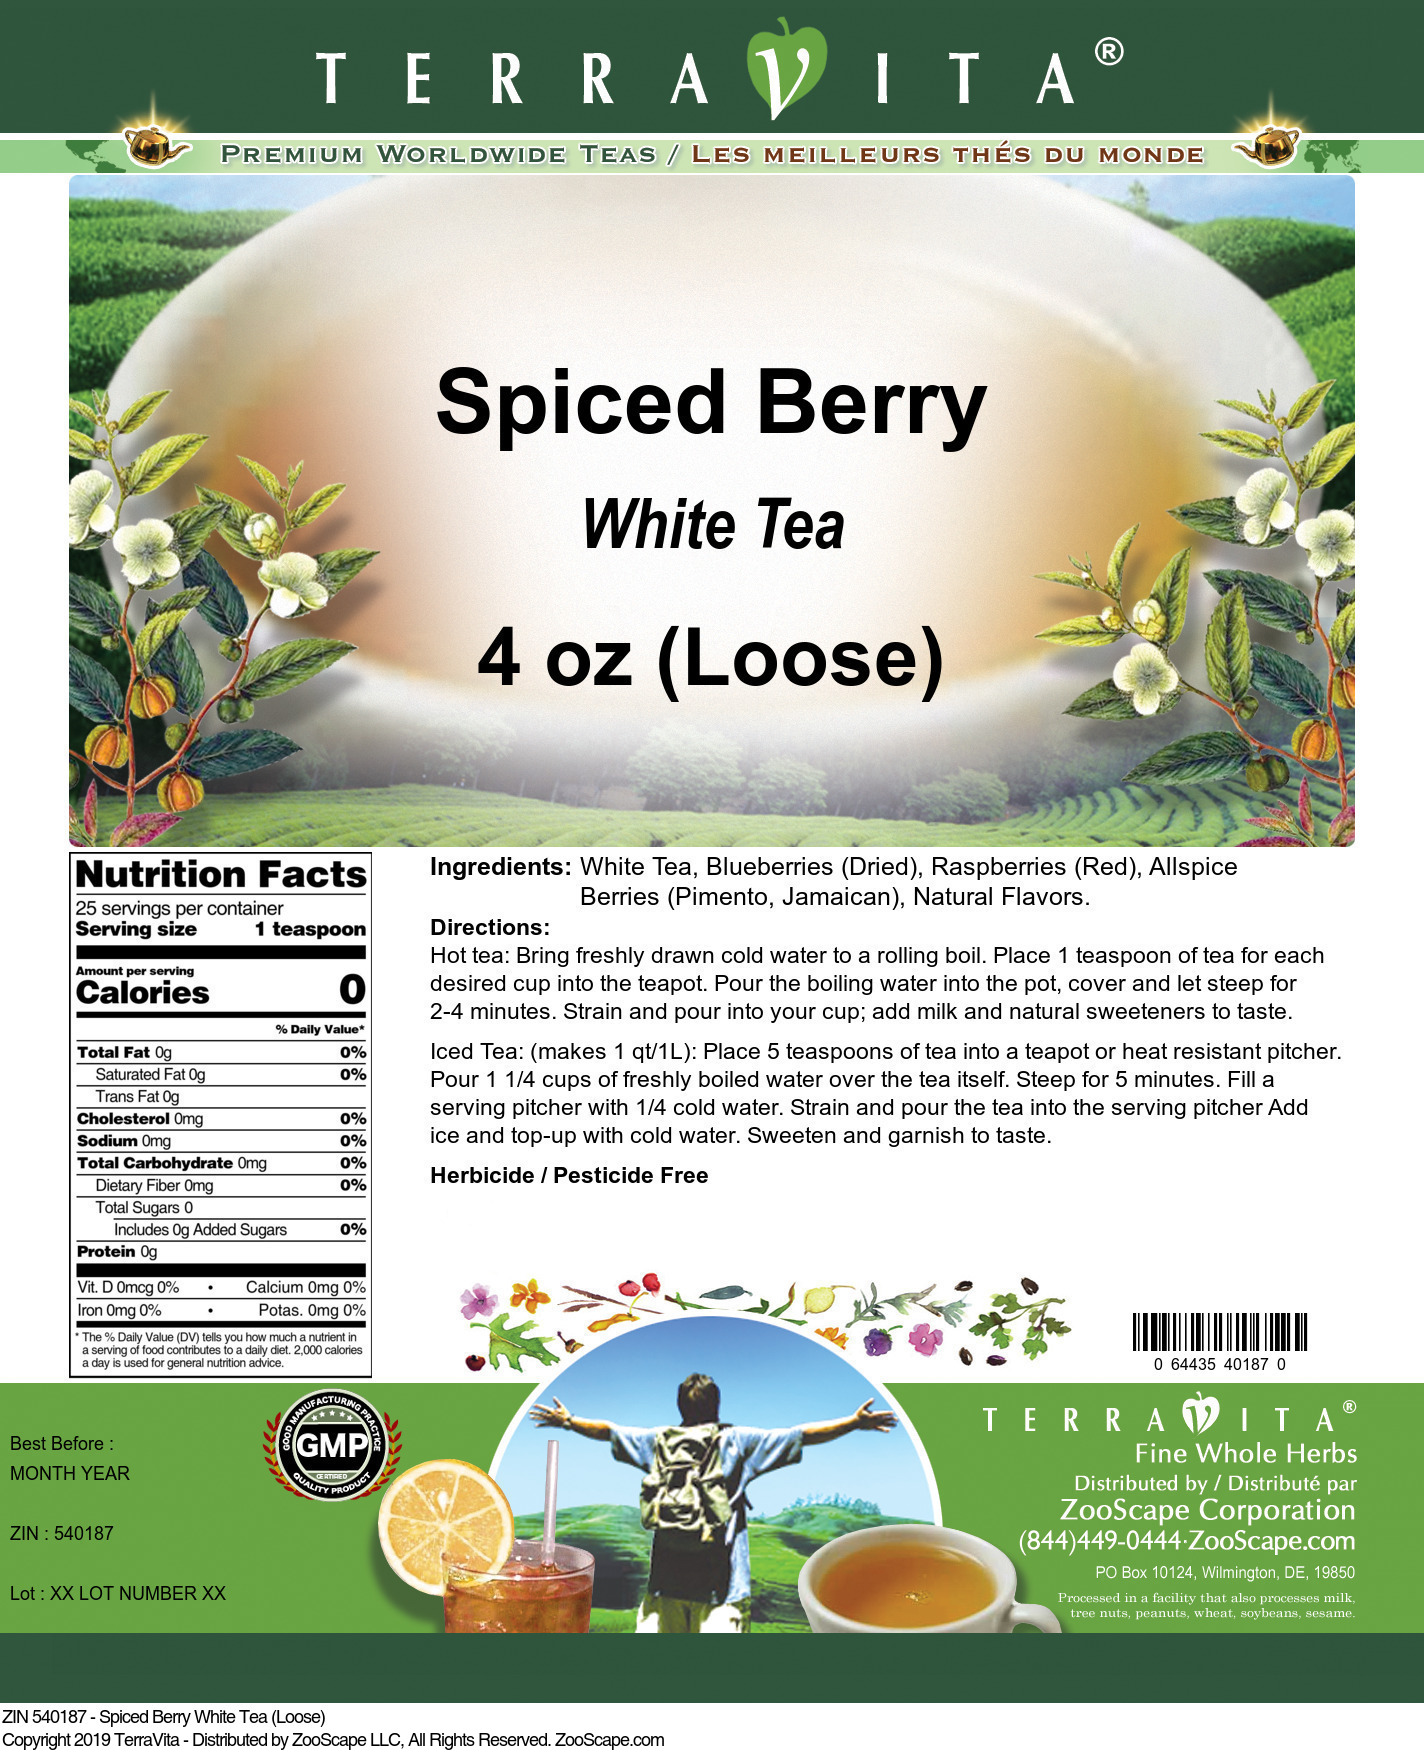 Spiced Berry White Tea (Loose)